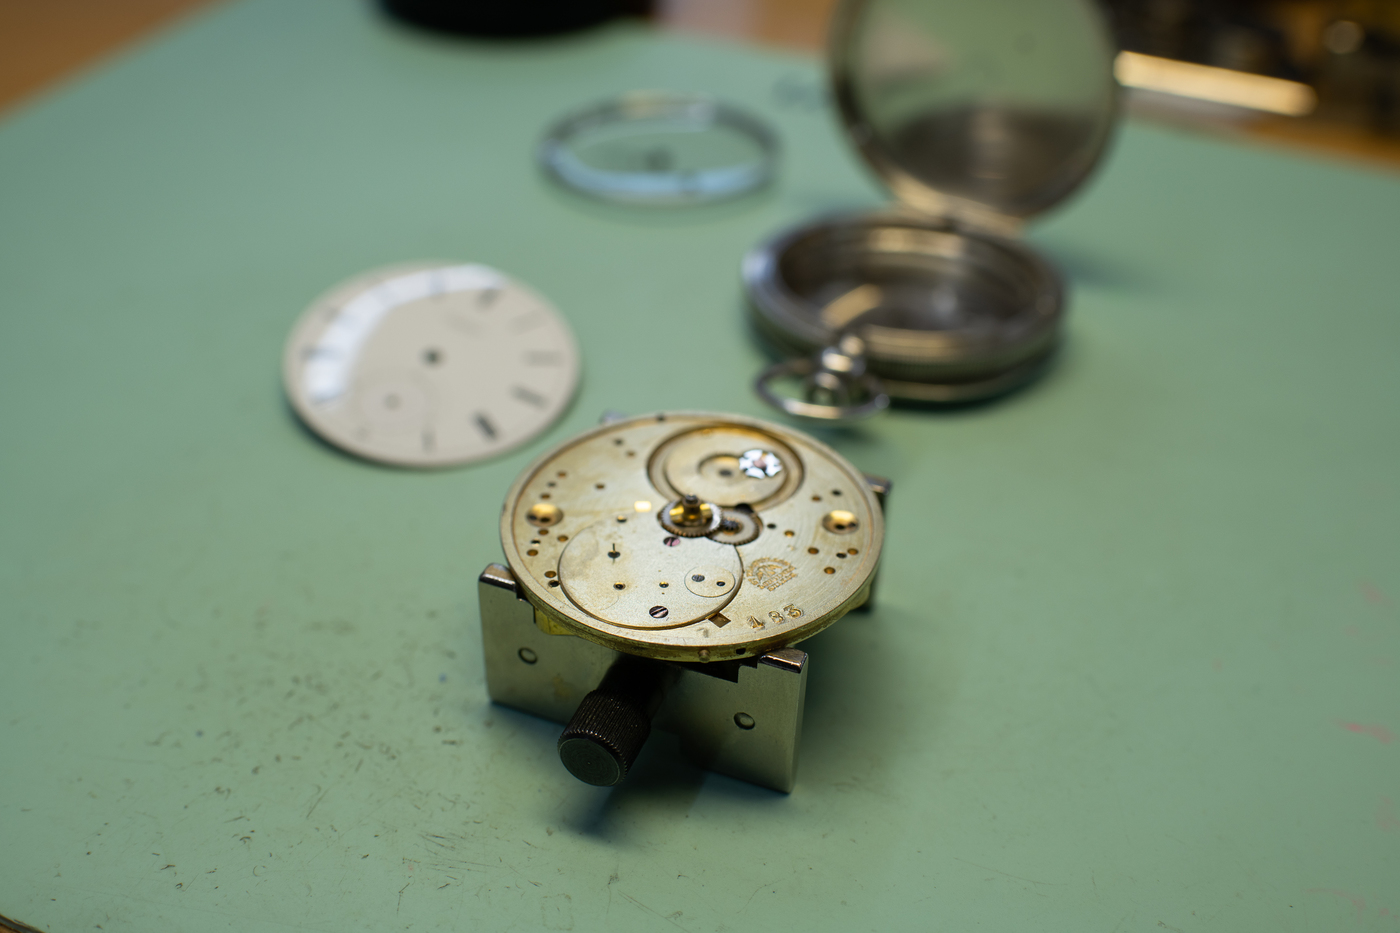 Longines Corporate Event: A collector finds the oldest Longines watch known to date, a historical discovery for the brand 9